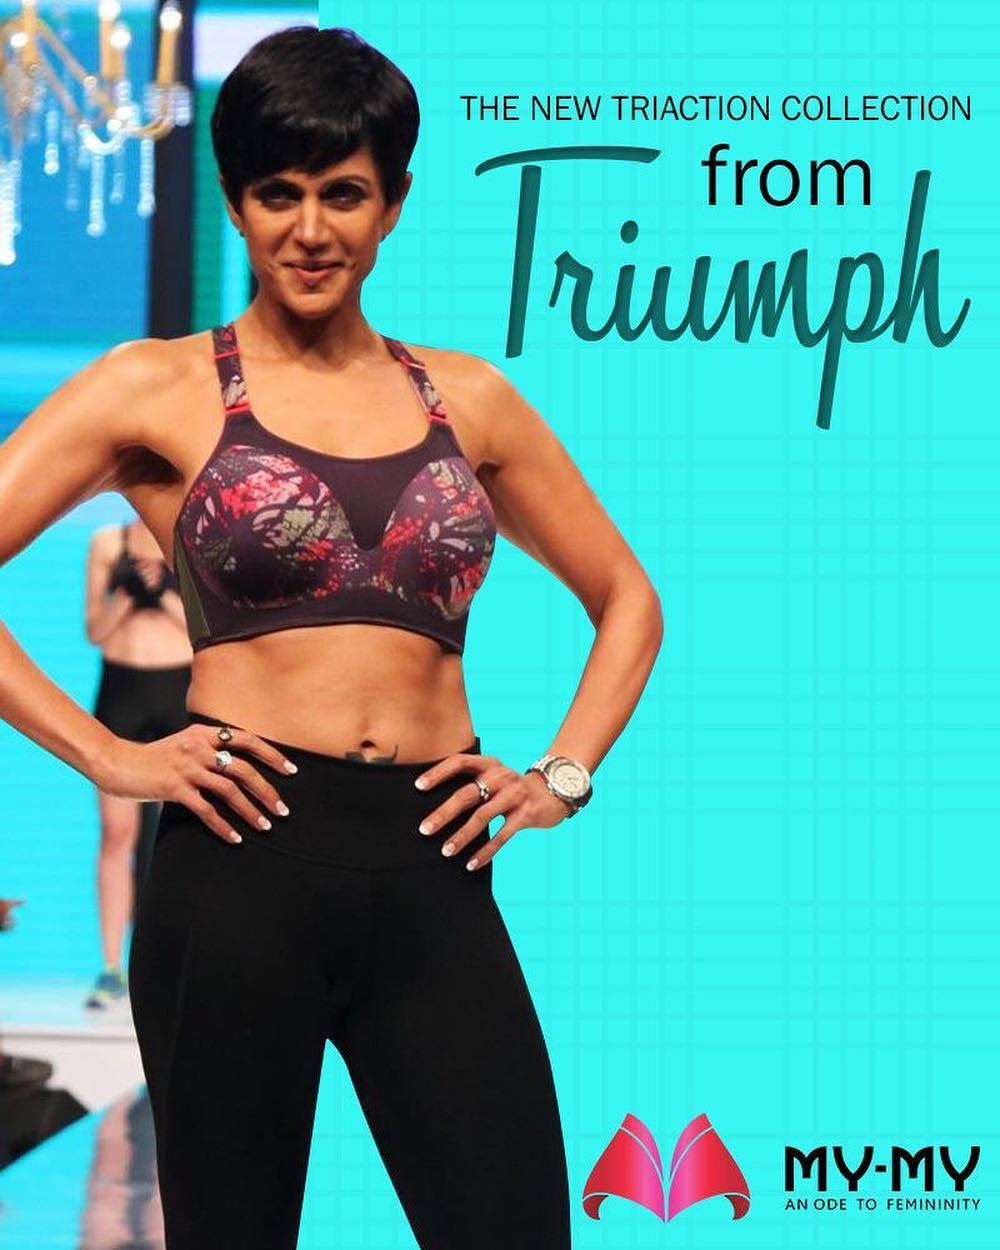 My-My,  Triaction, Triumph!, MyMy, MyMyAhmedabad, Fashion, Ahmedabad